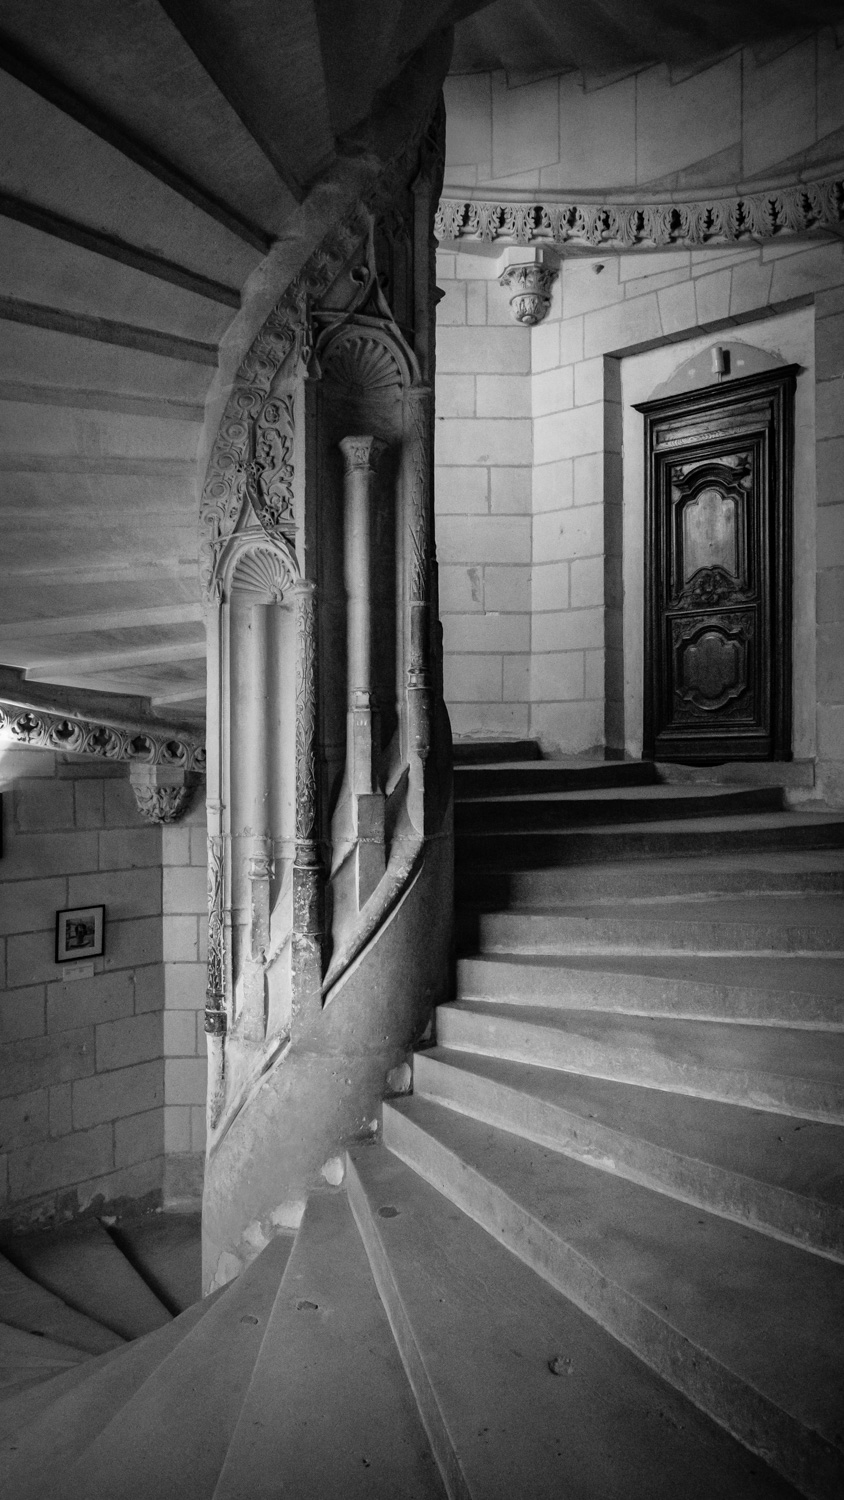 The spiral staircase inside the Château de Chenonceau